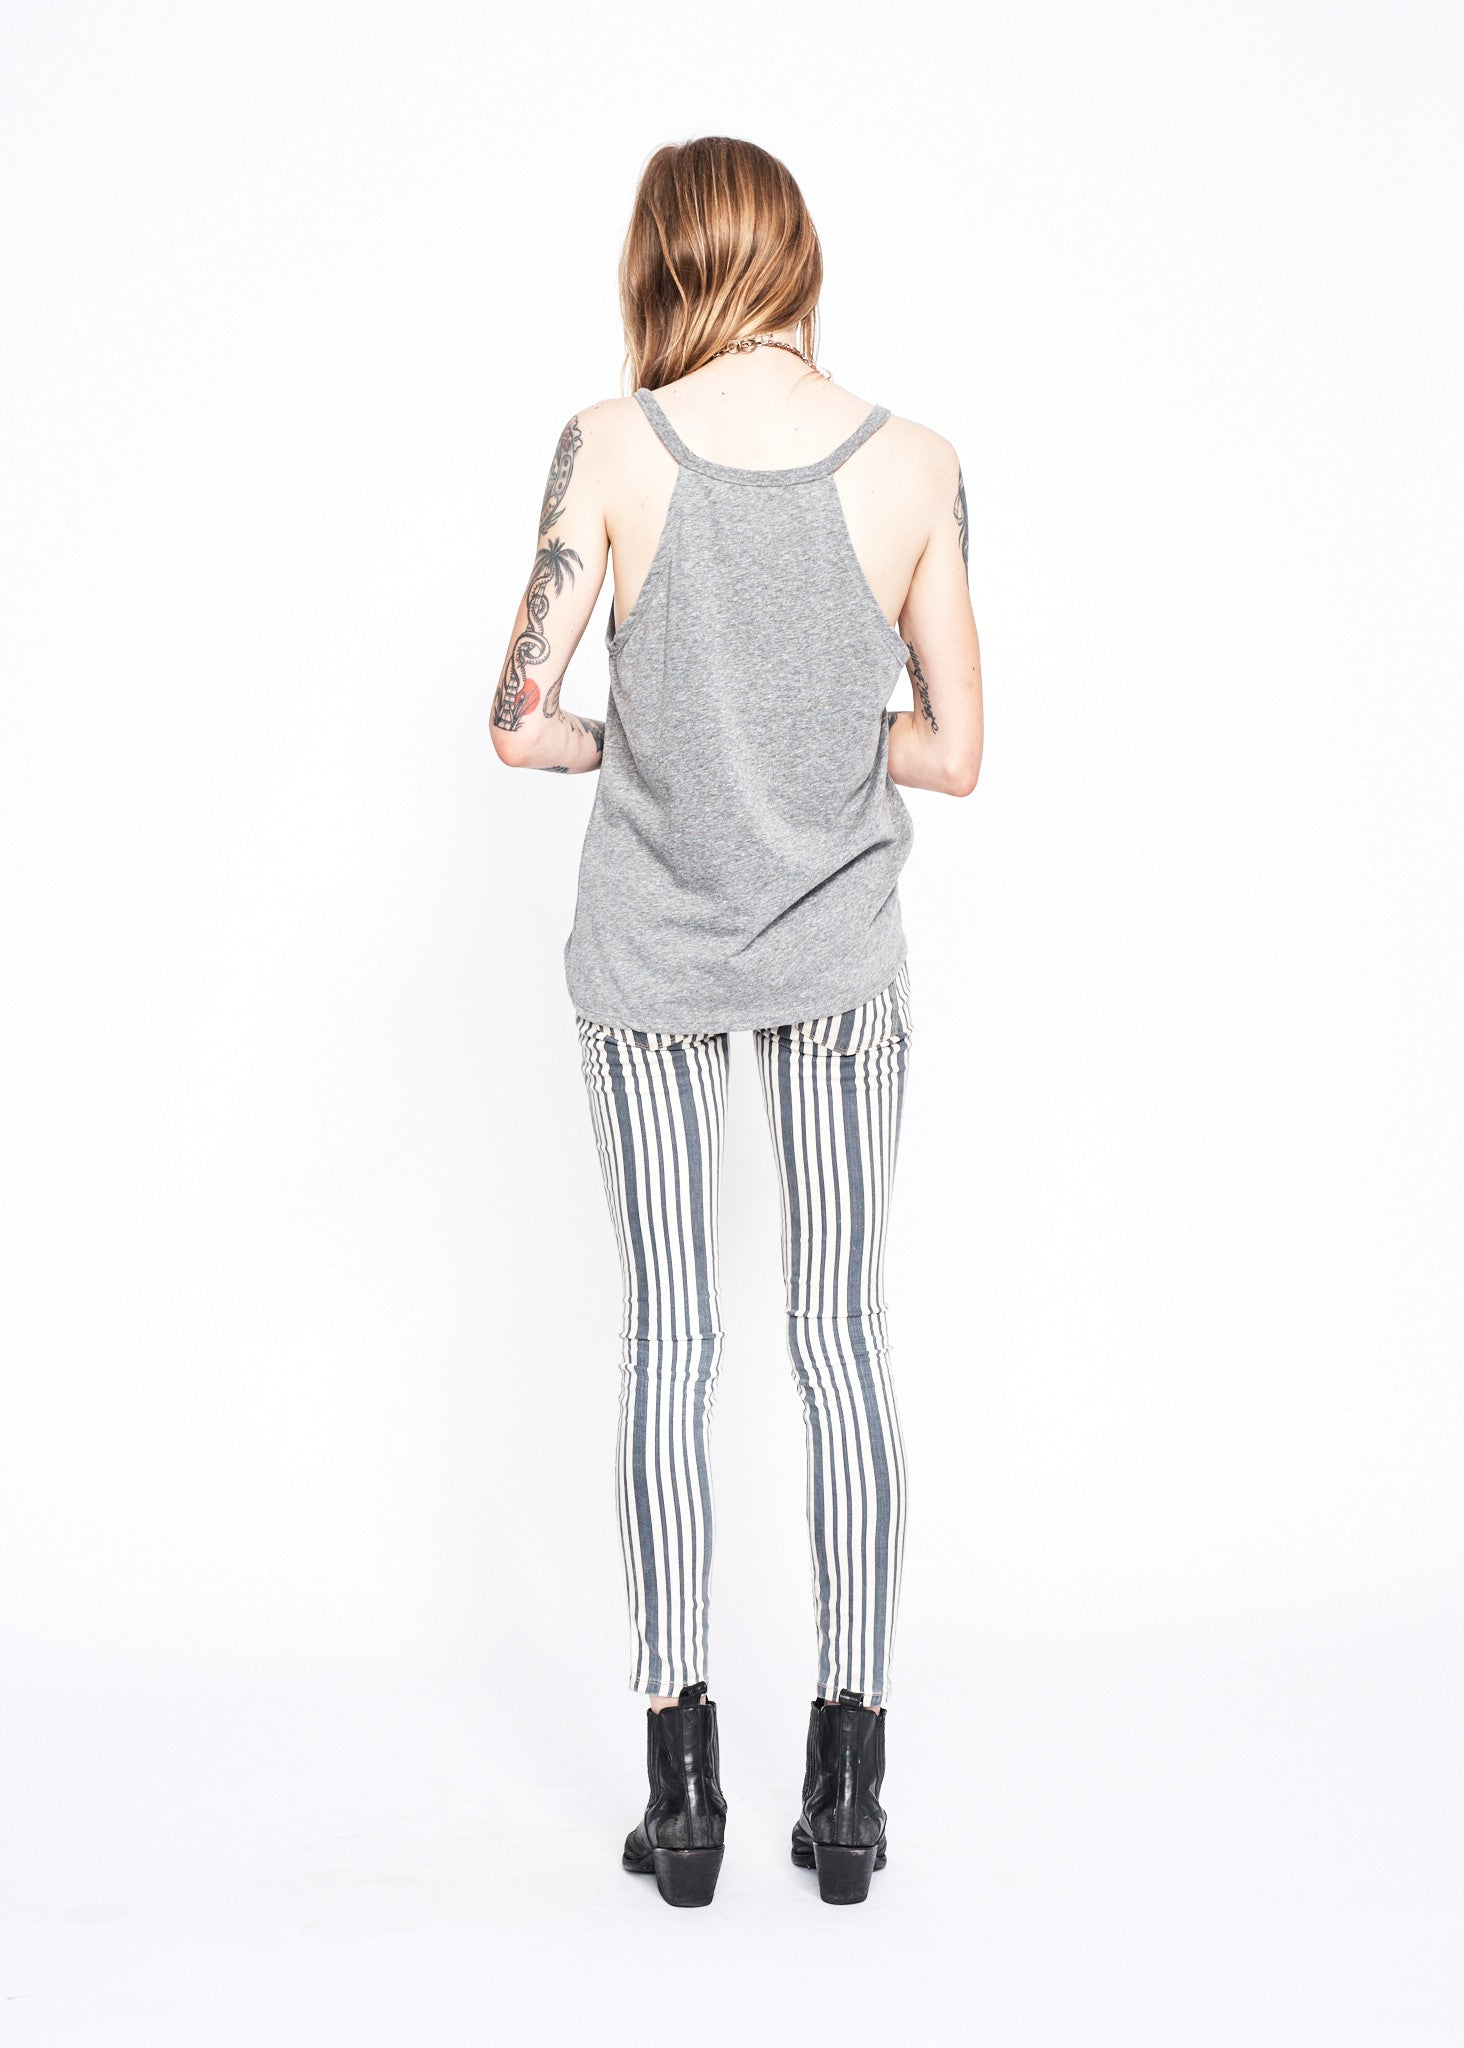 Cheshire Cat Halter Tank - Heather Grey - Women's Muscle Tee - Midnight Rider